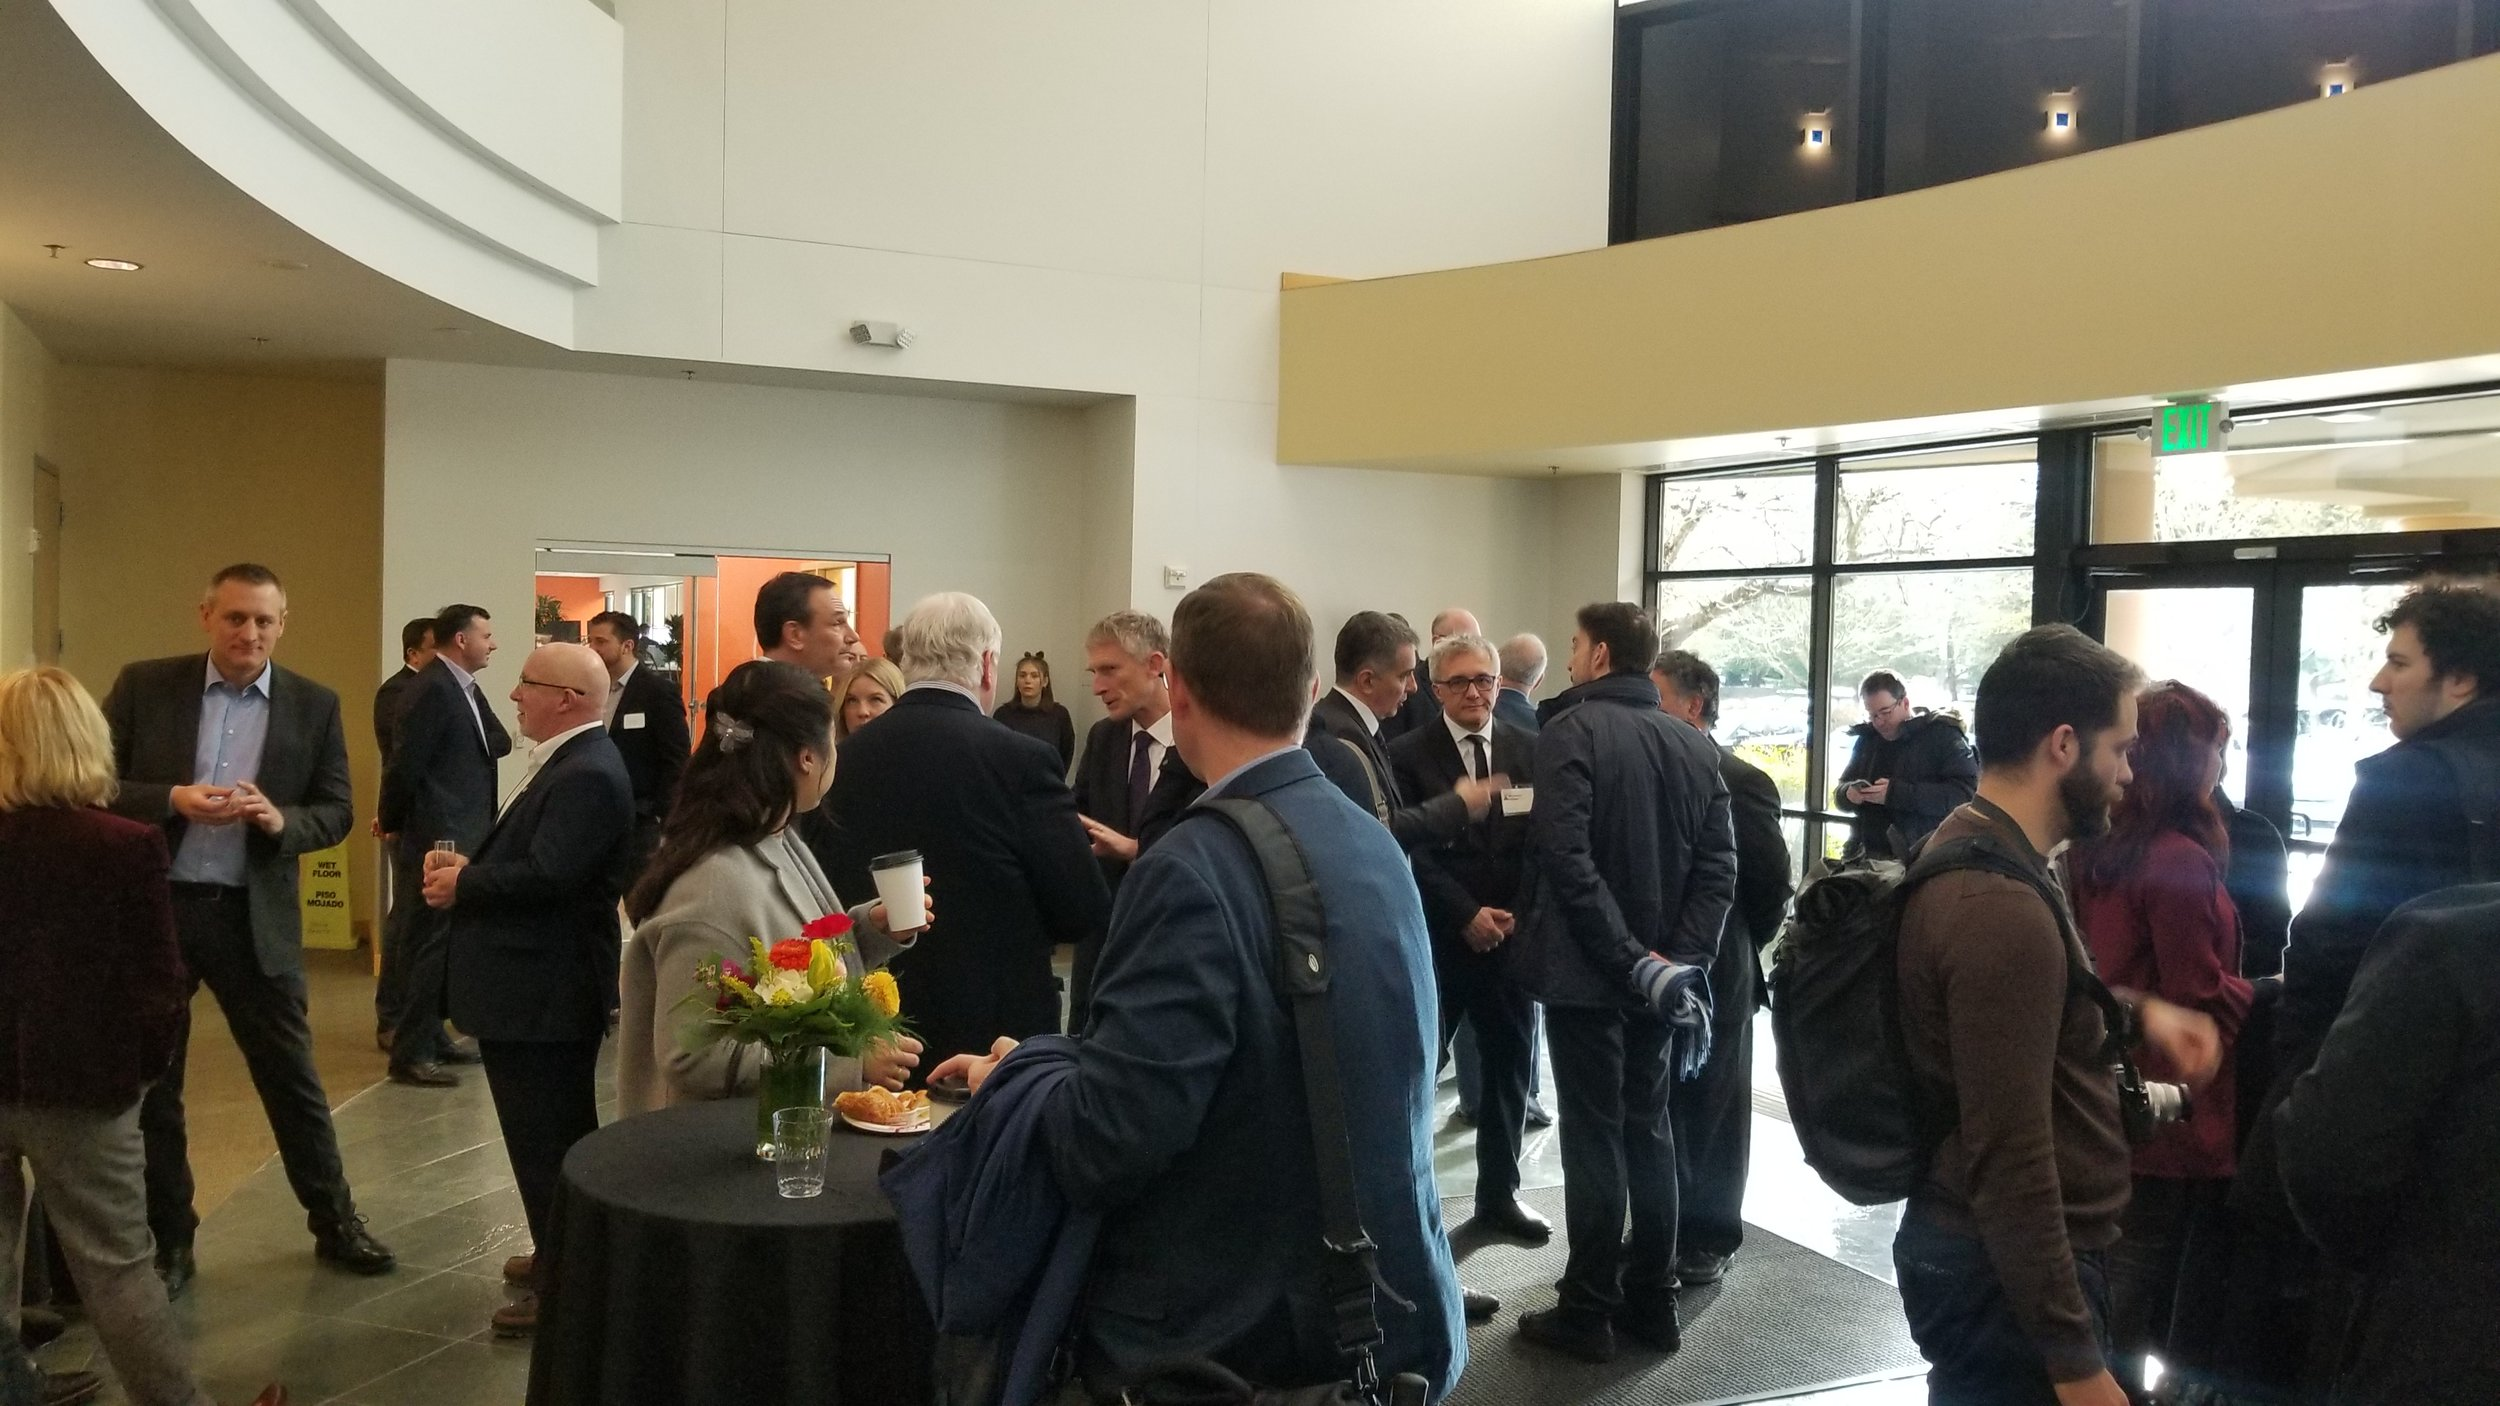 Grand Opening of LeoStella facility - February 15, 2019